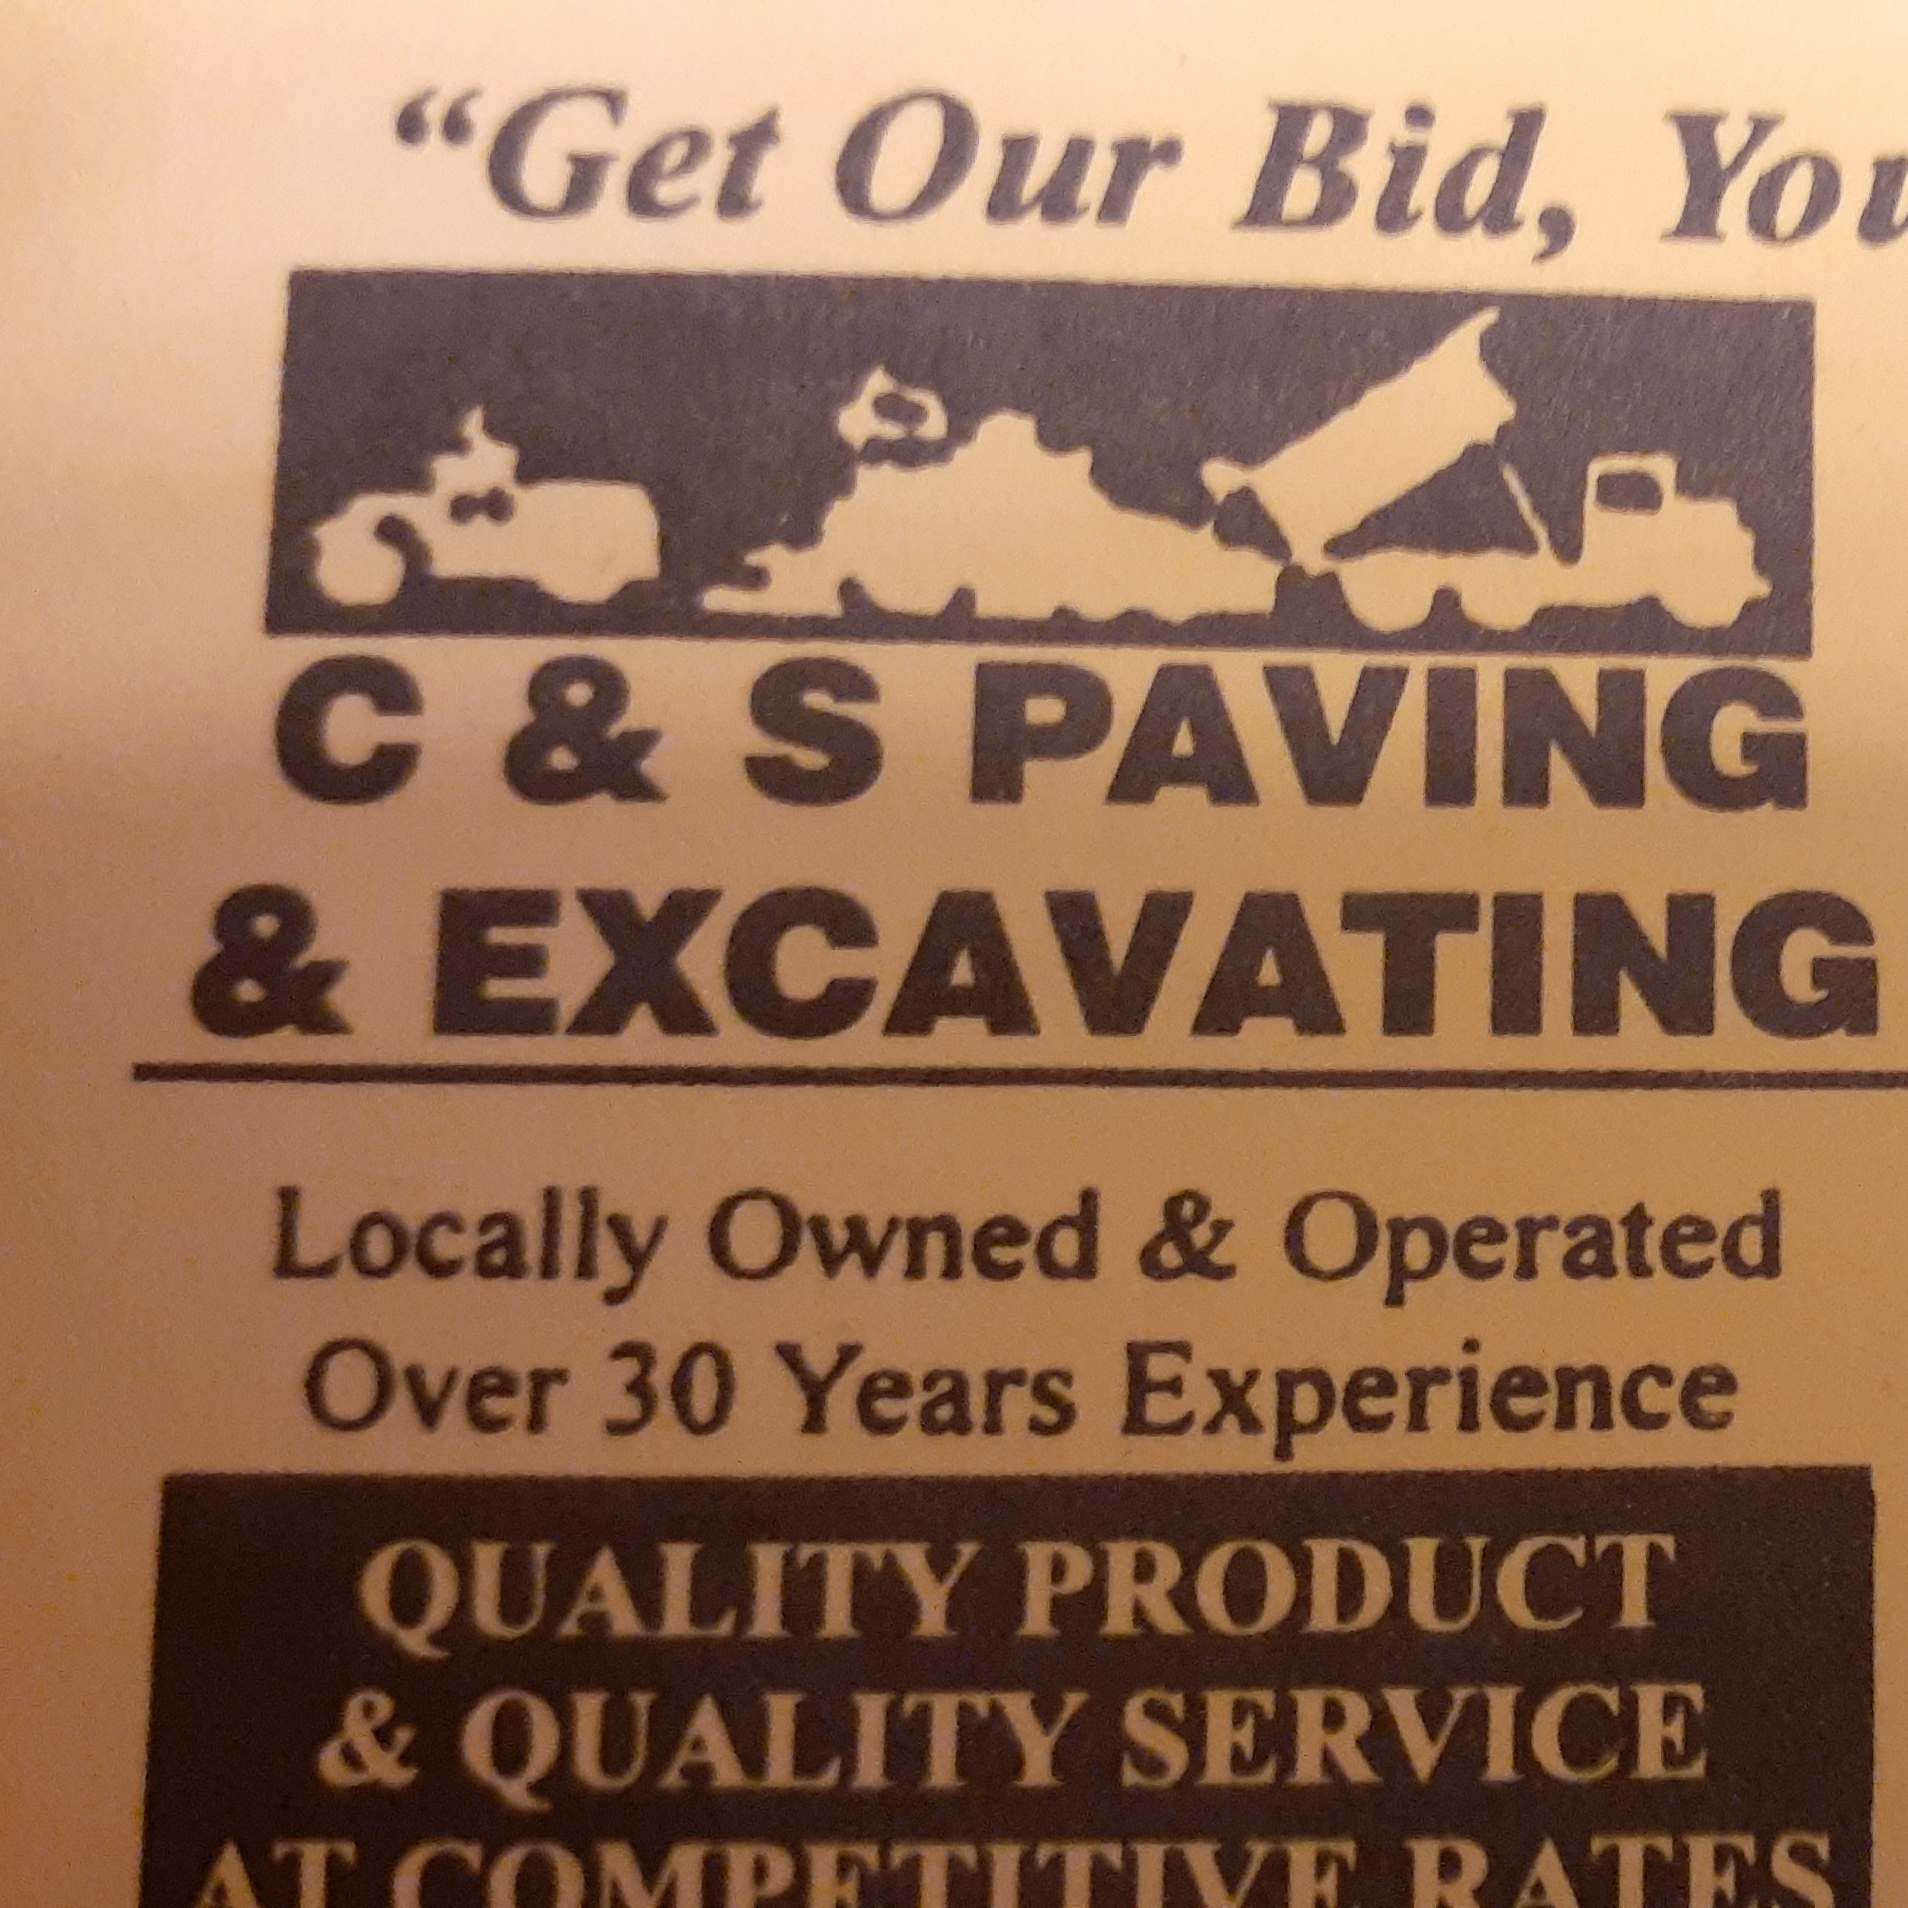 C&S Paving & Excavating